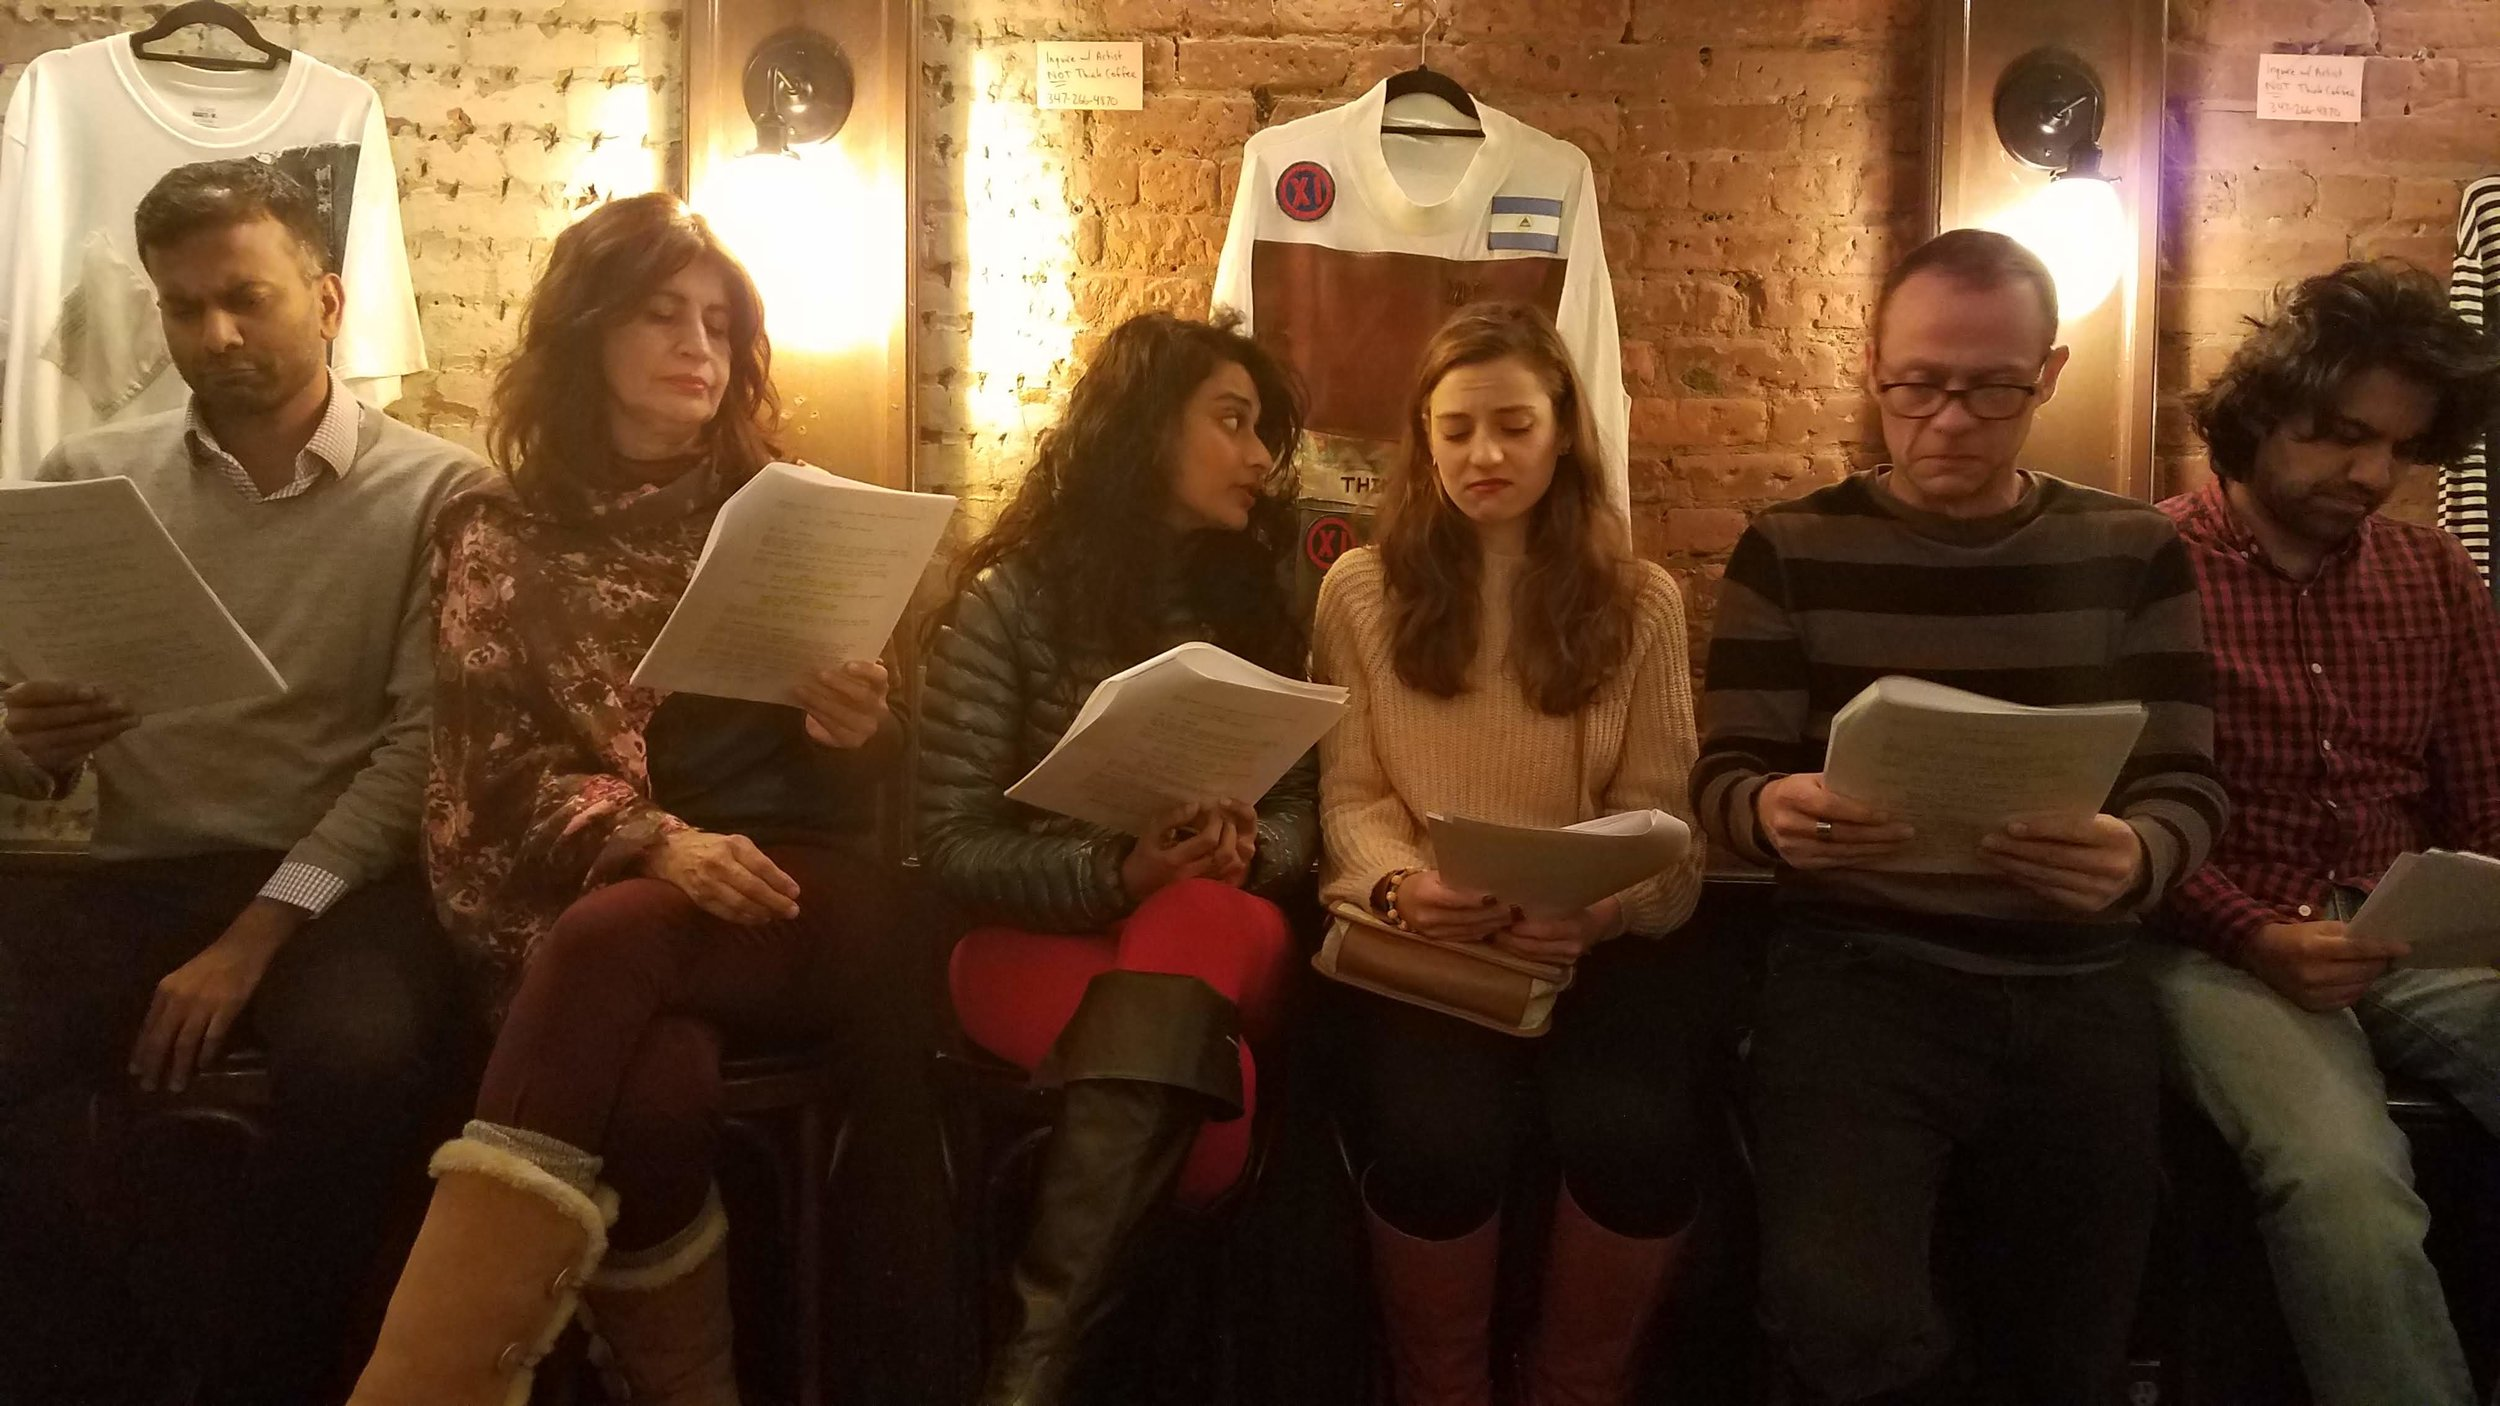 Golden City: A New Path by Sydney Burtner, with Sajeev Pillai, Sonia Lopes, Preeti Gupta, Marisa Schmidt, Jamil Al-chokhachi, Imran Sheikh, and not pictured: Kyle Minshew and stage directions read by Robin Fusco